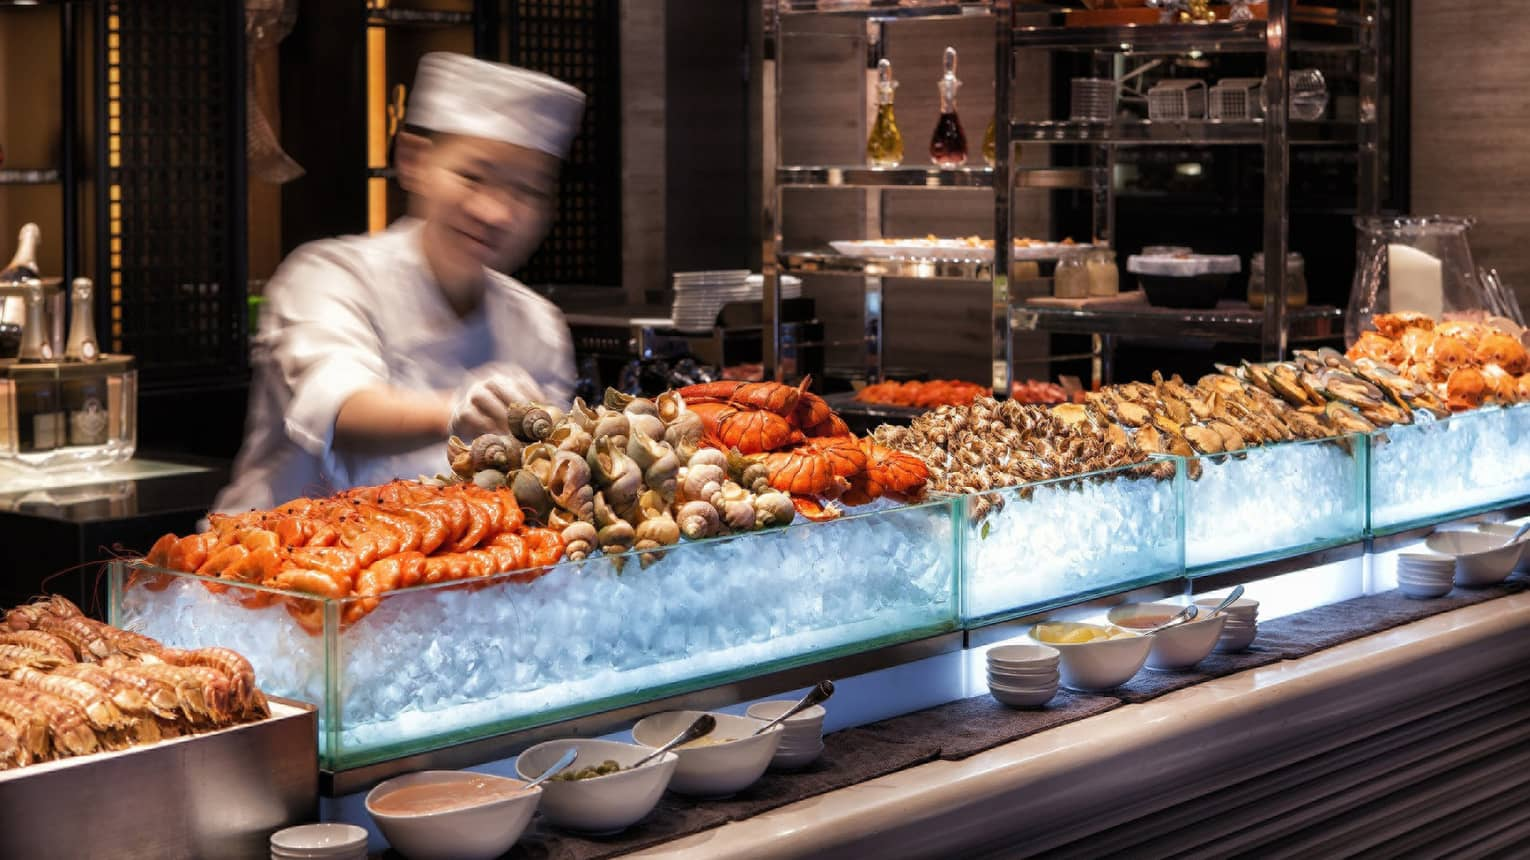 Chef reaches for snails on fresh seafood display on ice at bar